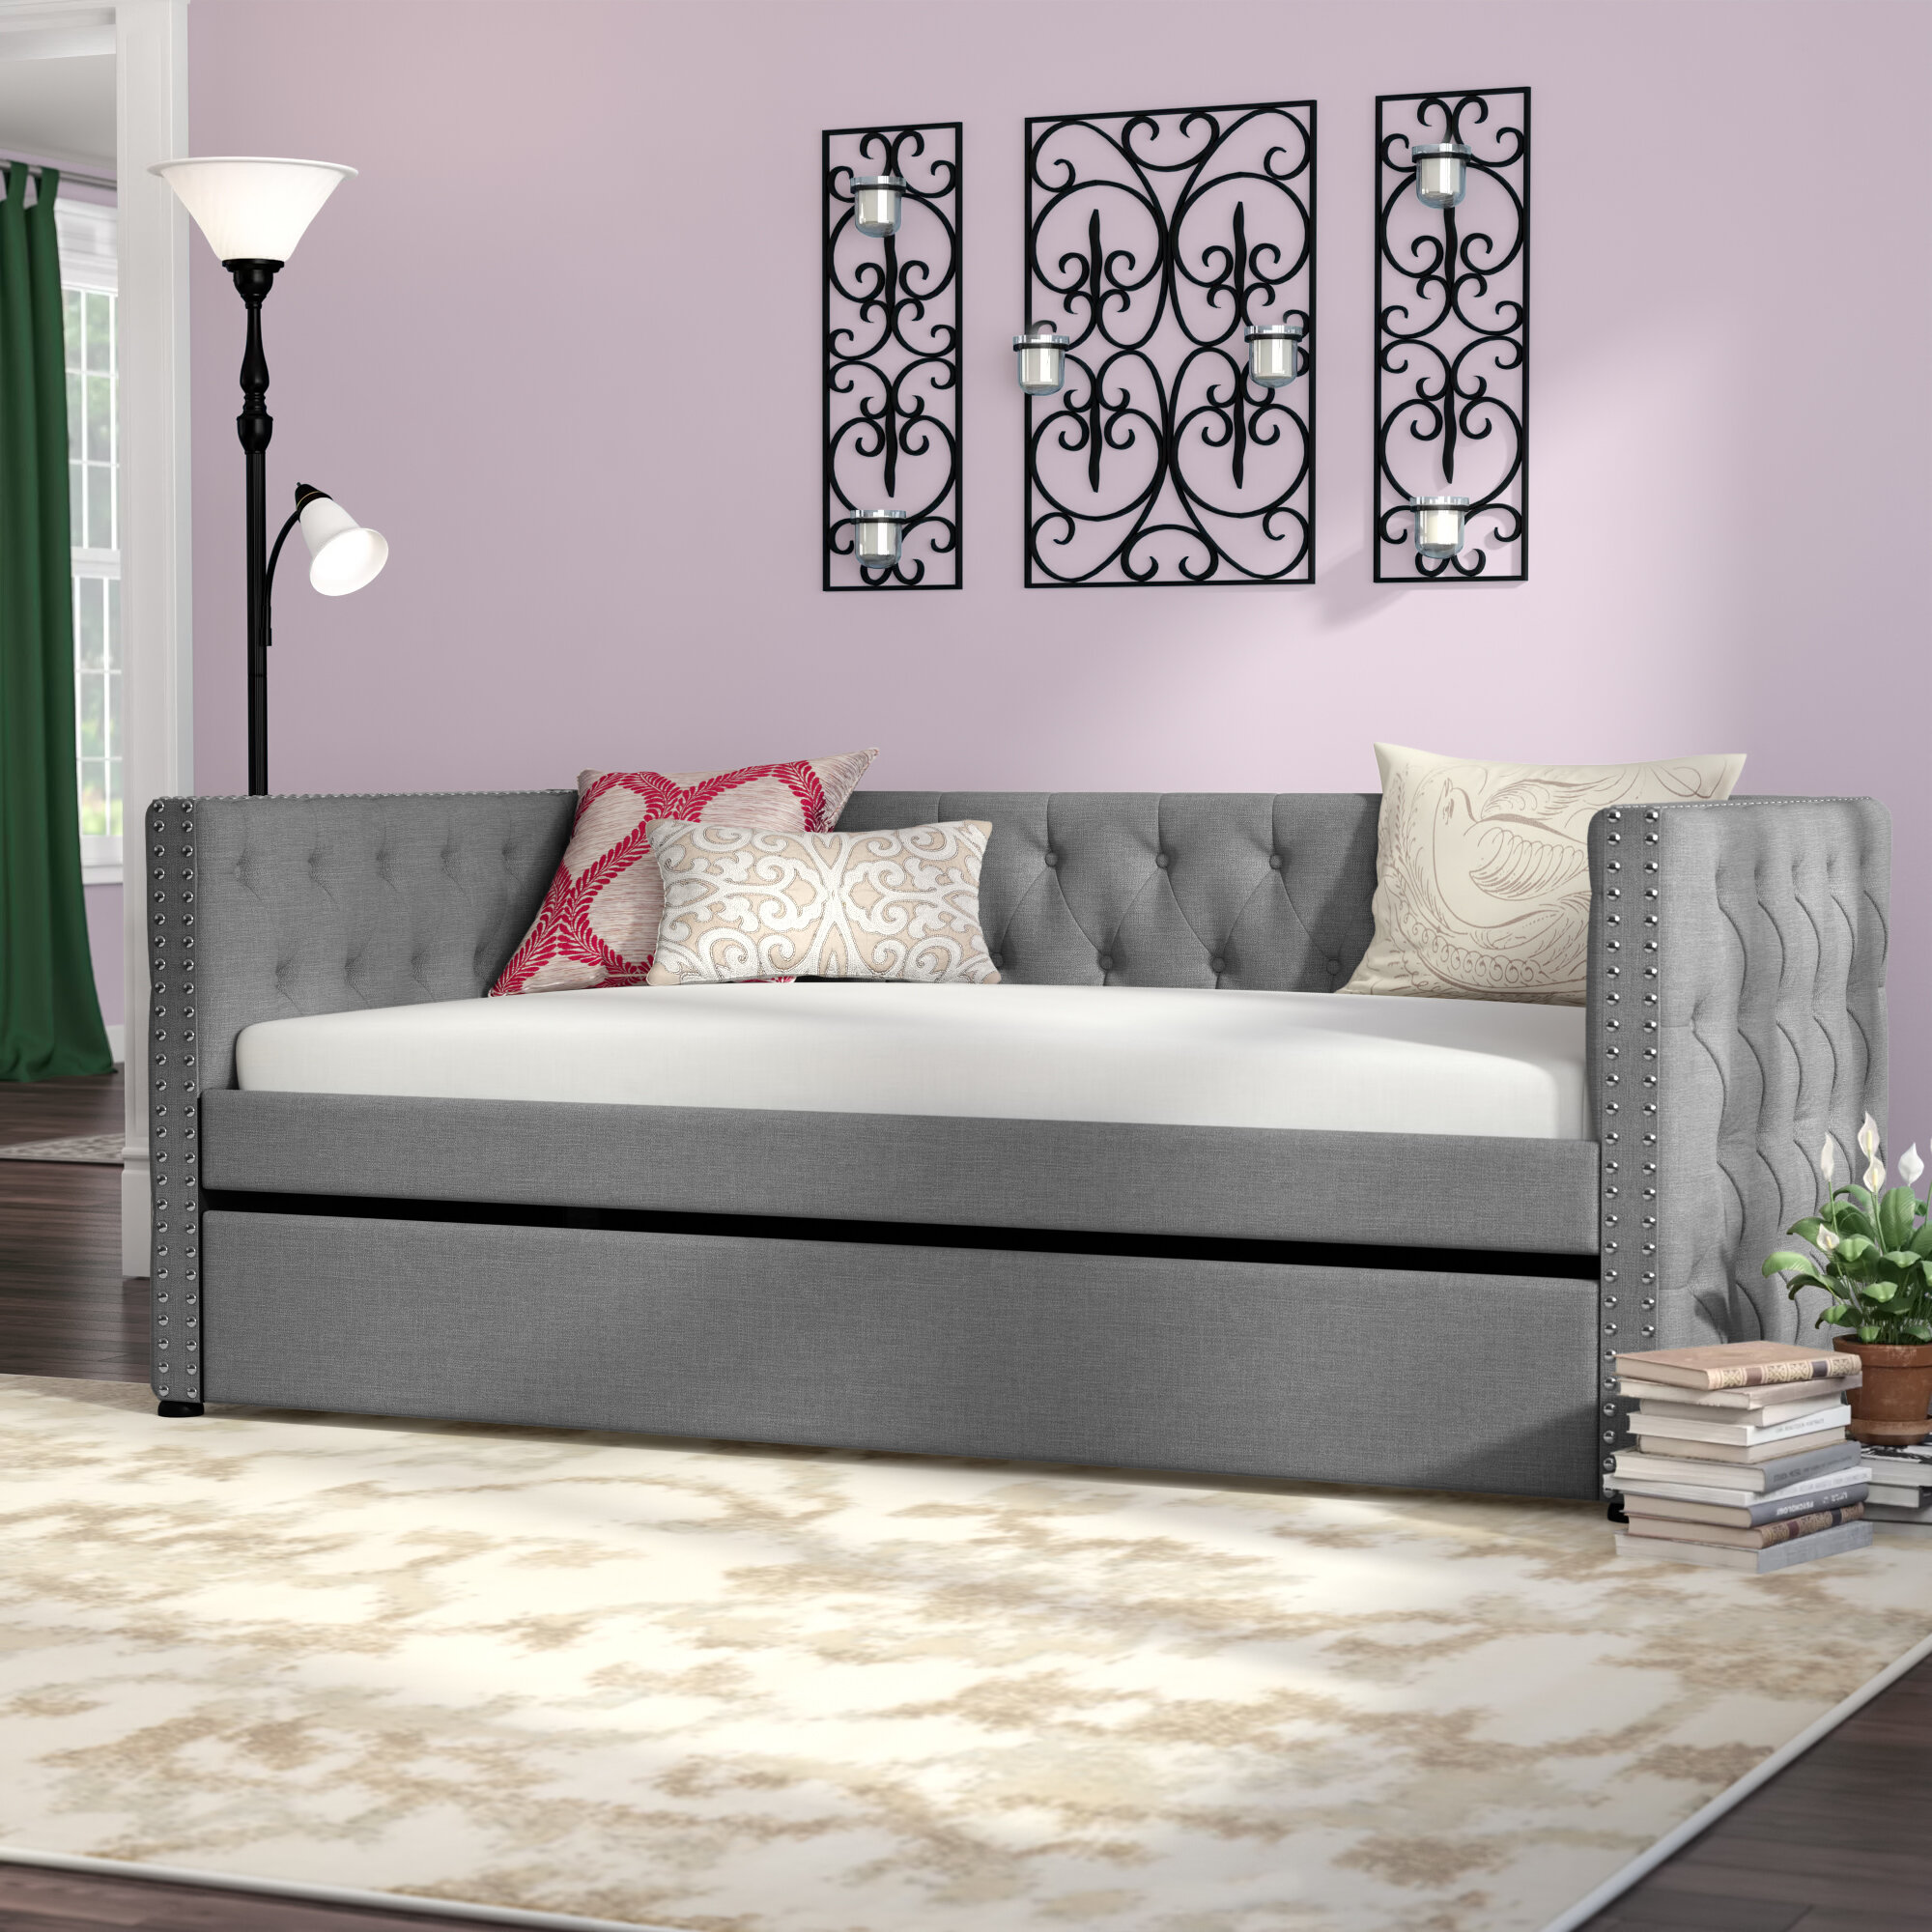 Charlton Home Dangelo Upholstered Twin Daybed With Trundle Reviews